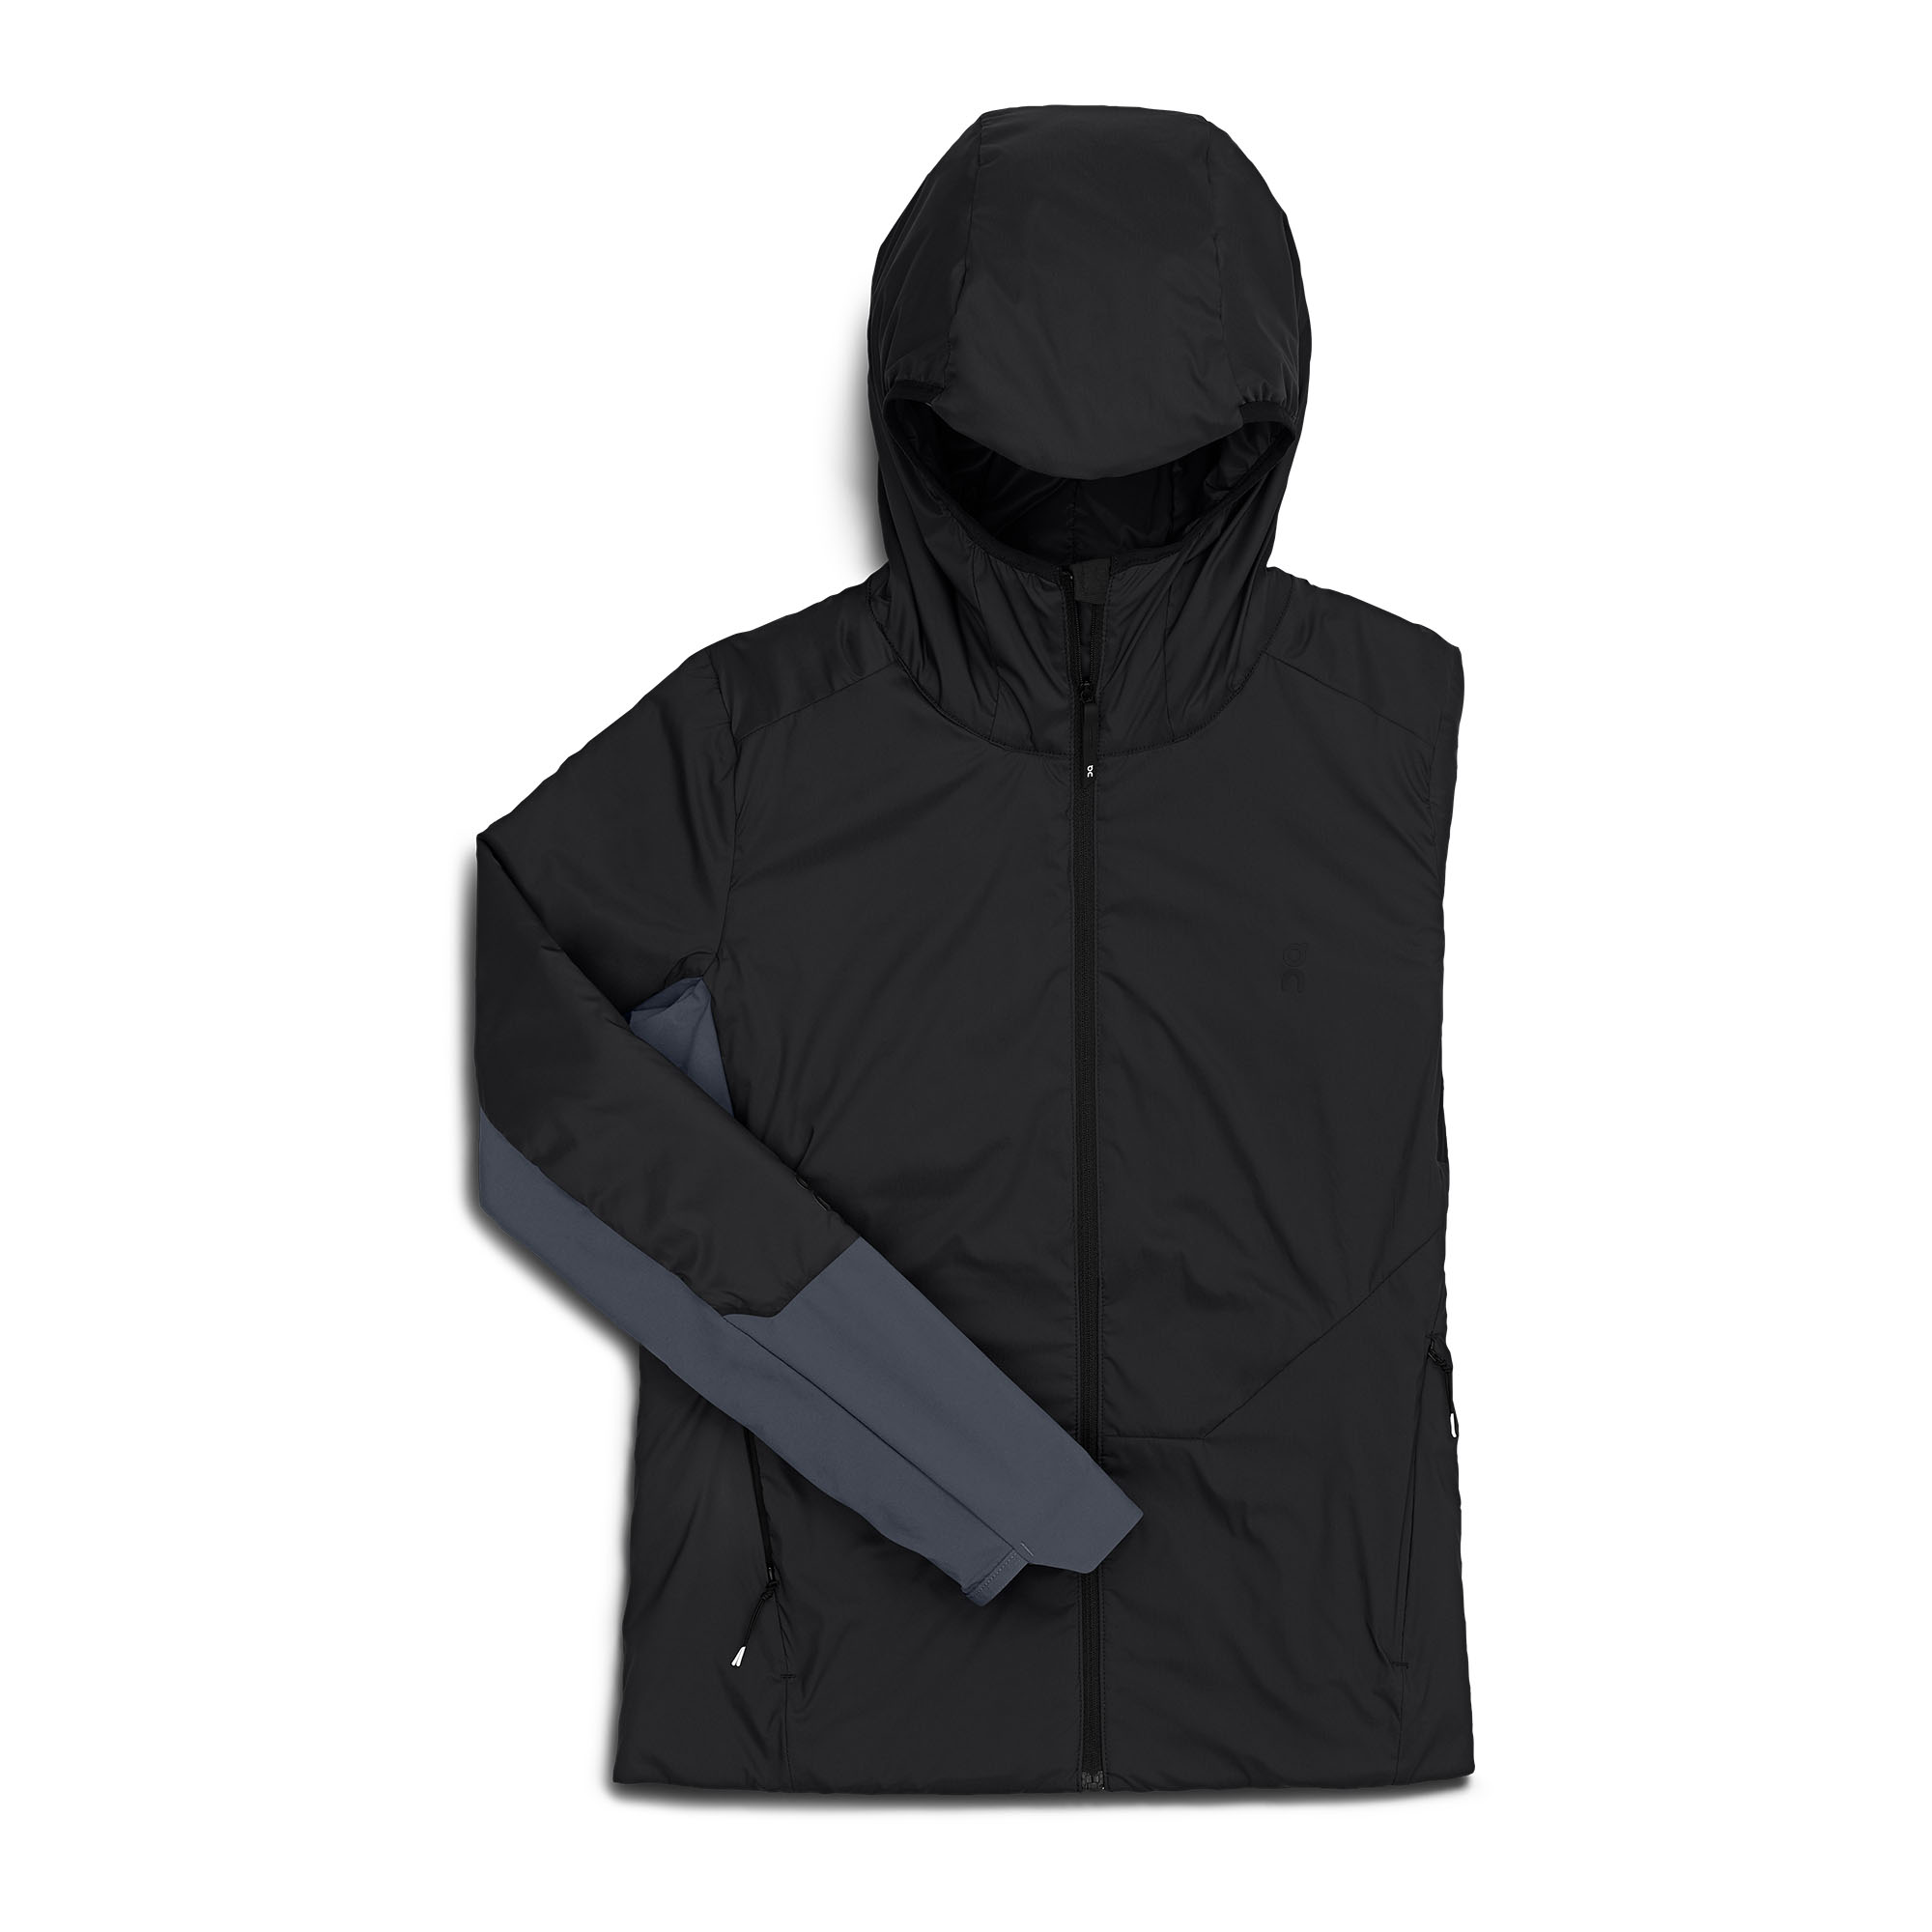 【WOMEN'S】On Insulator Jacket Black/Dark